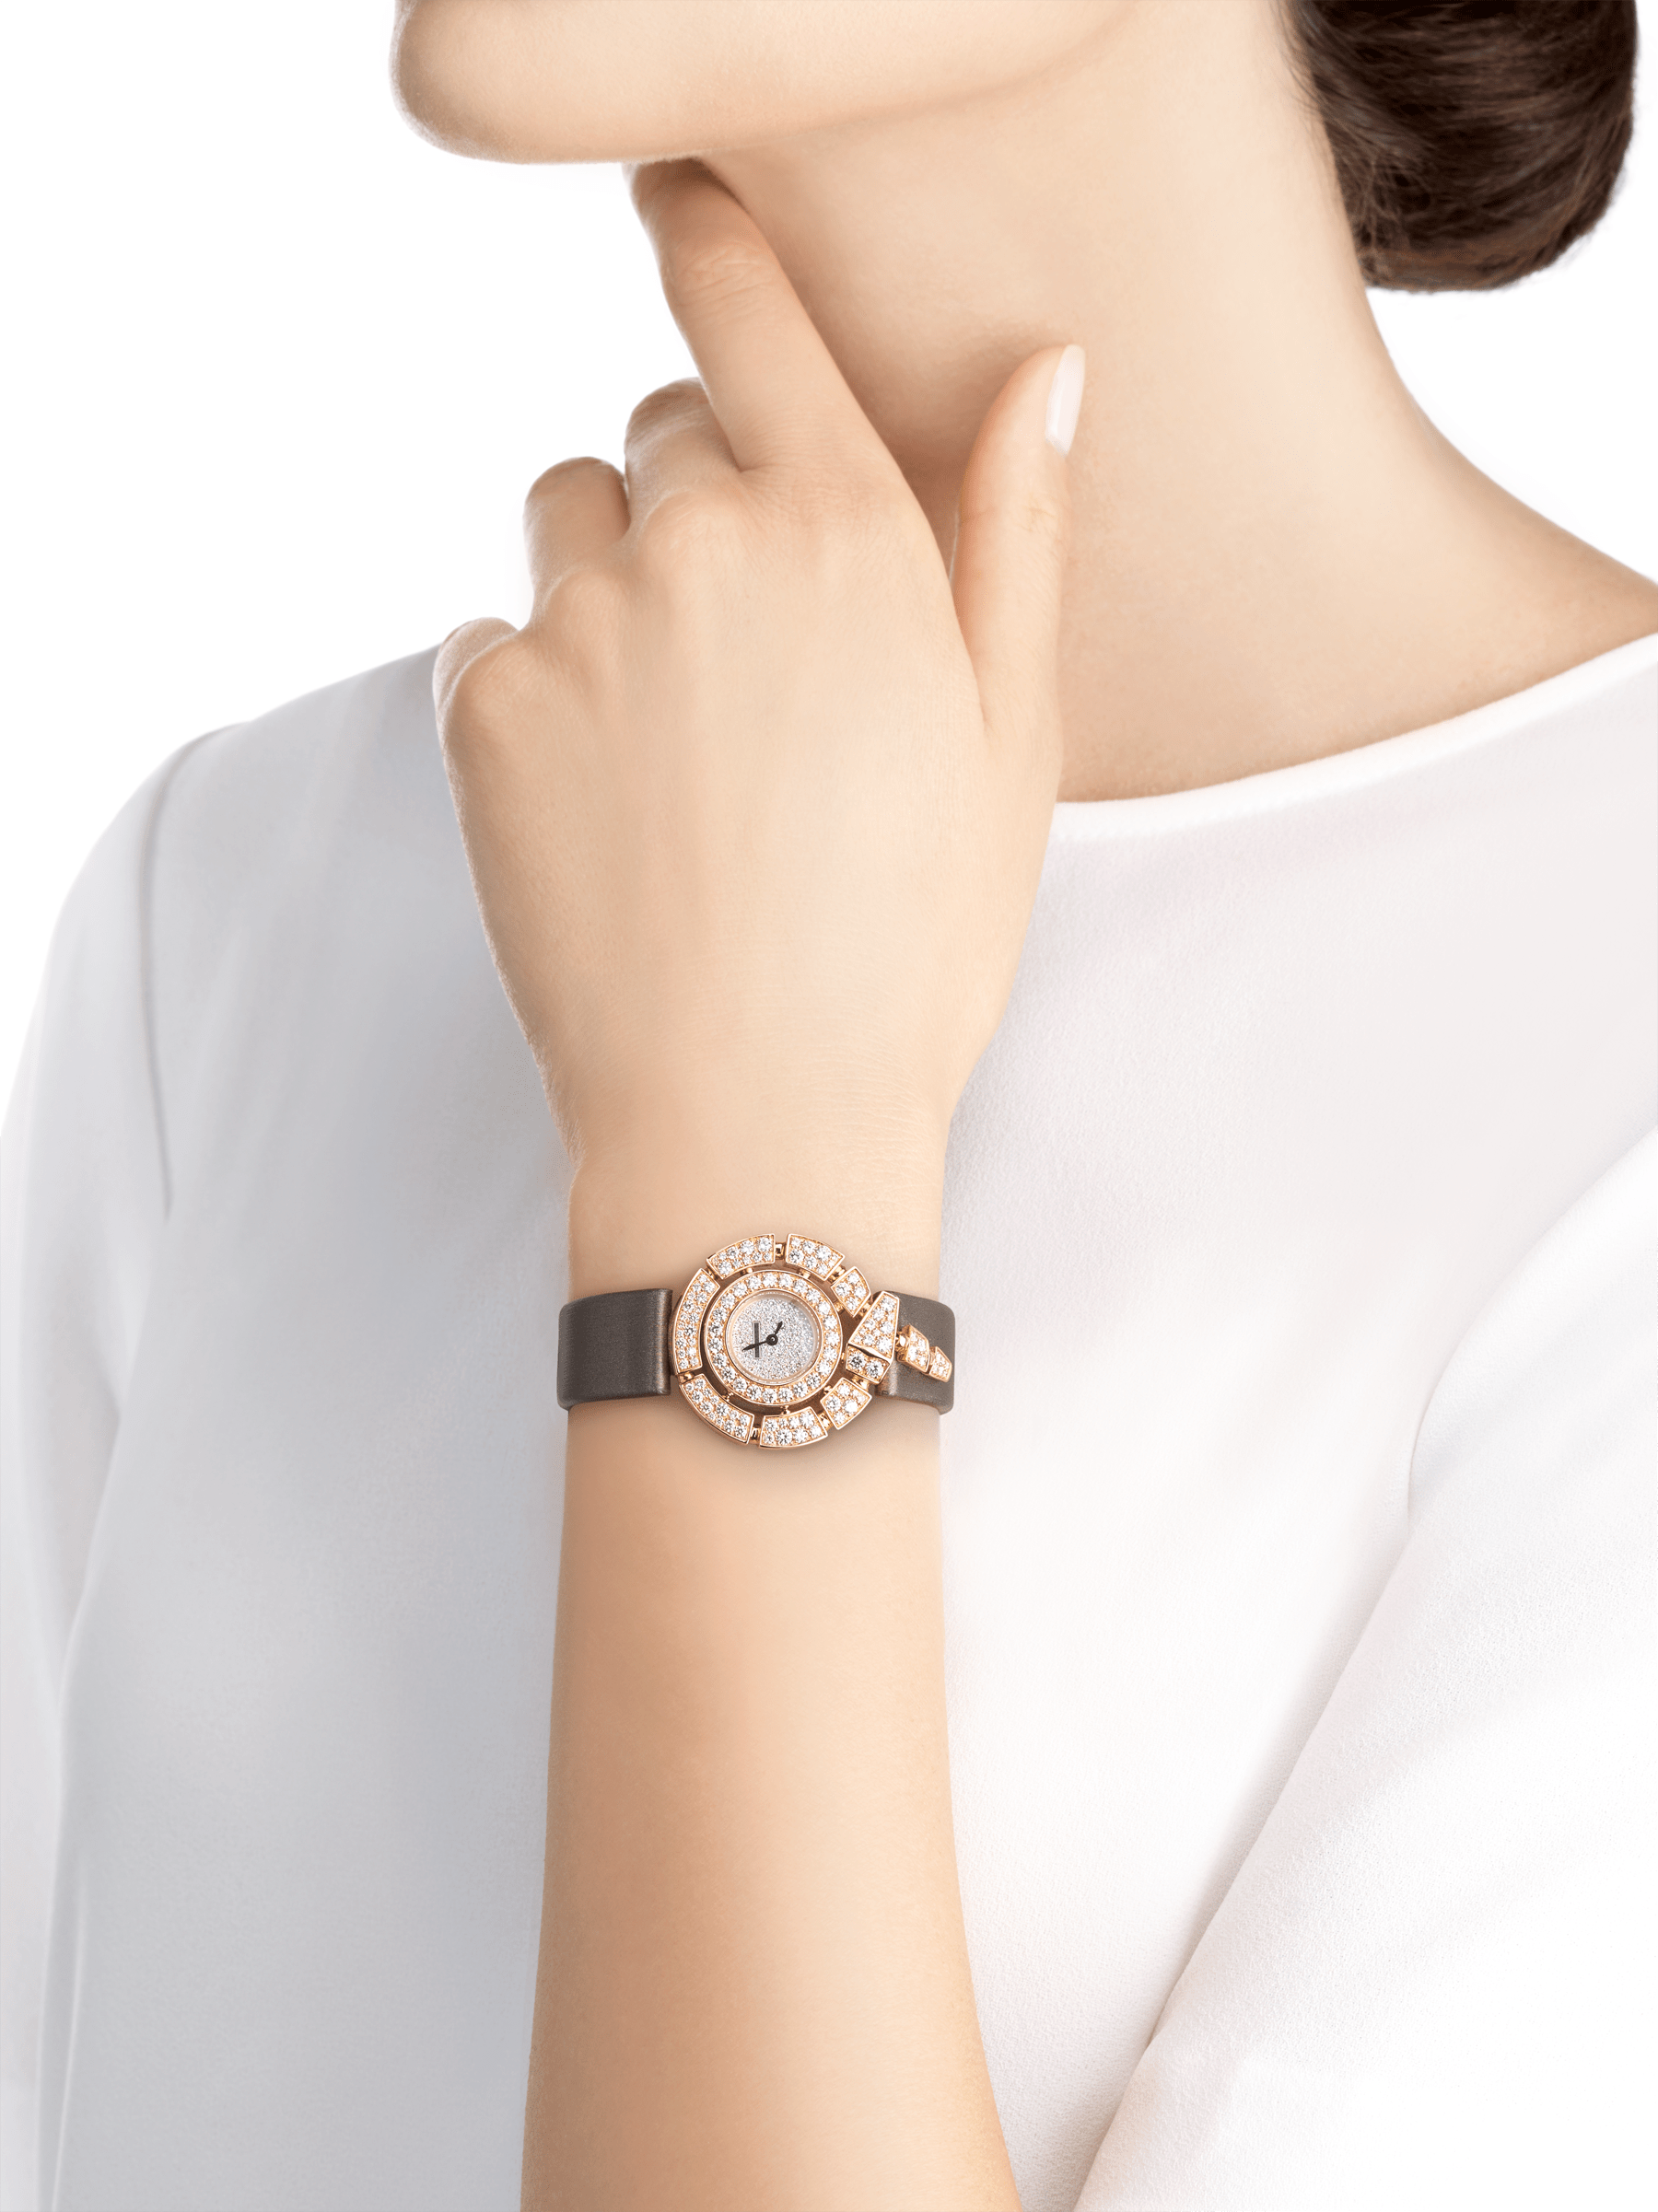 Serpenti Incantati watch with 18 kt rose gold case set with brilliant cut diamonds, snow-pavé diamond dial, grey satin bracelet. 102676 image 2